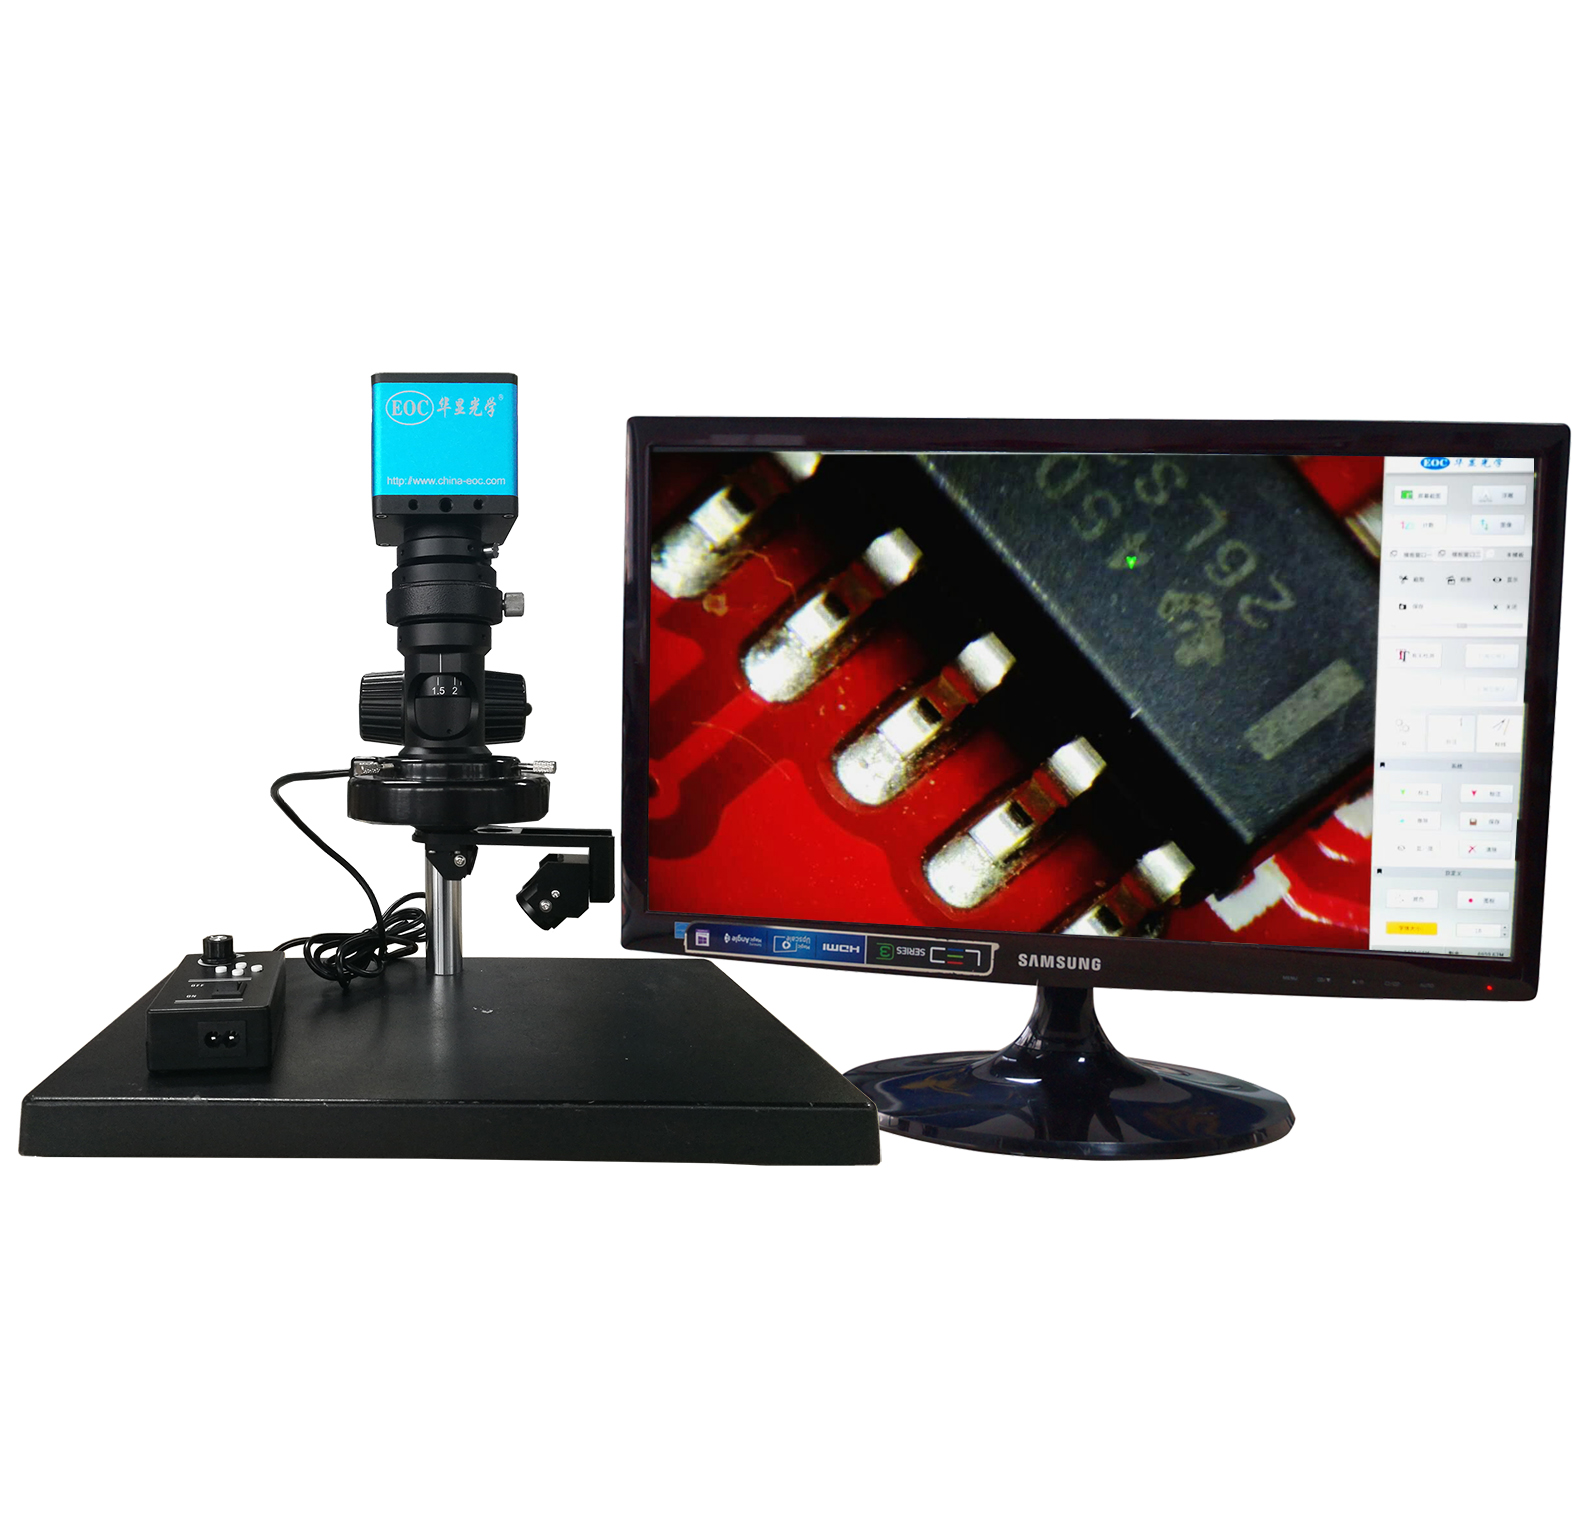 electronic connector 3D semiconductor HDMI Digital USB video microscope